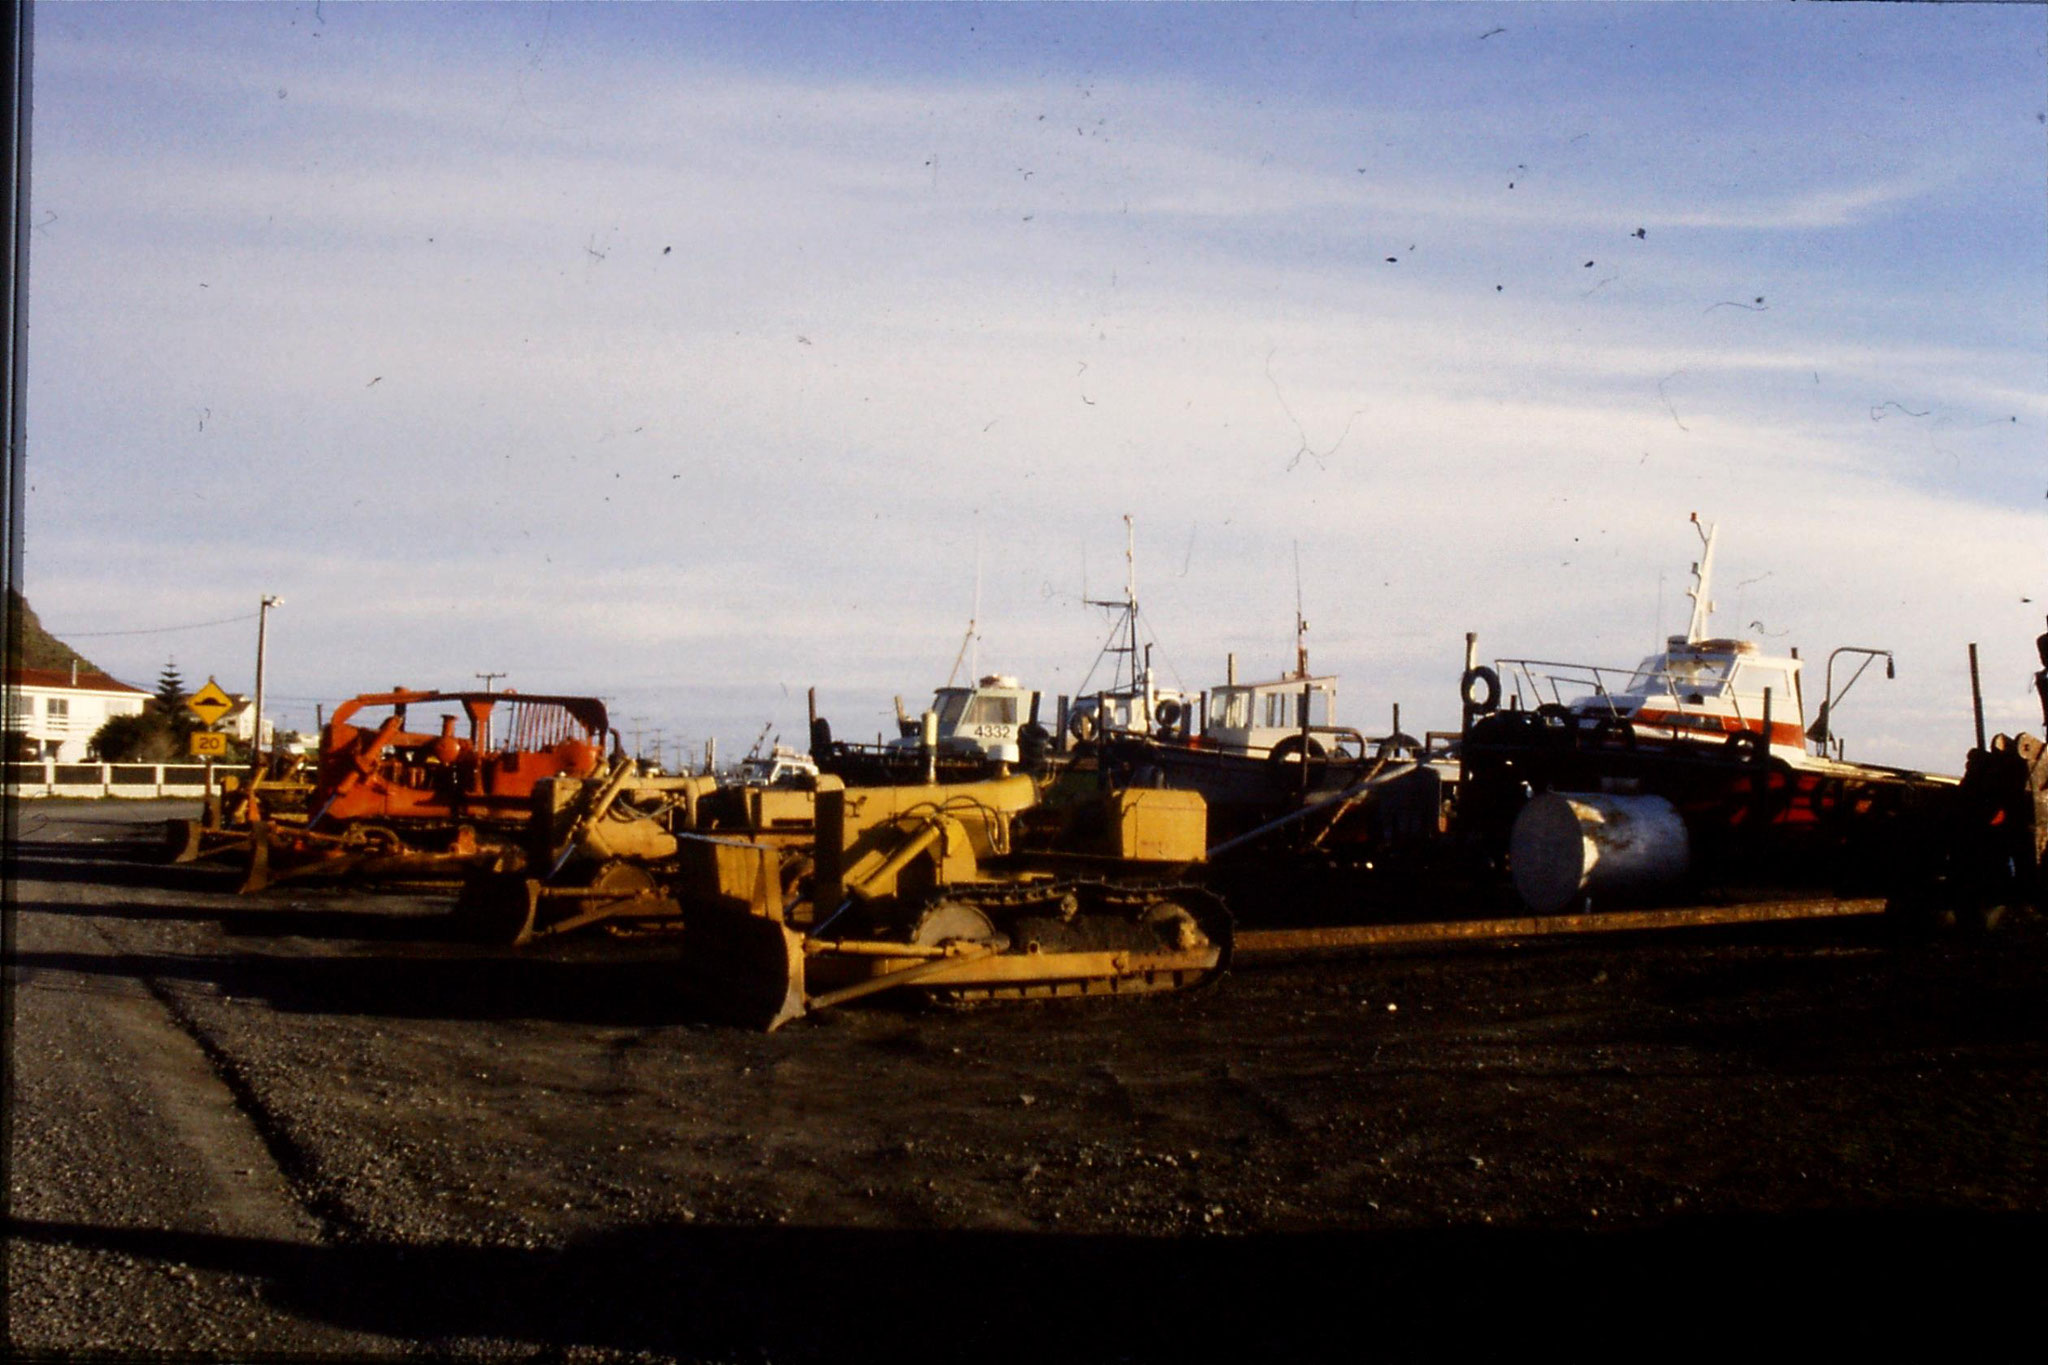 26/8/1990: 15:  Ngawihi, caterpillar tractors for pulling boats up beach